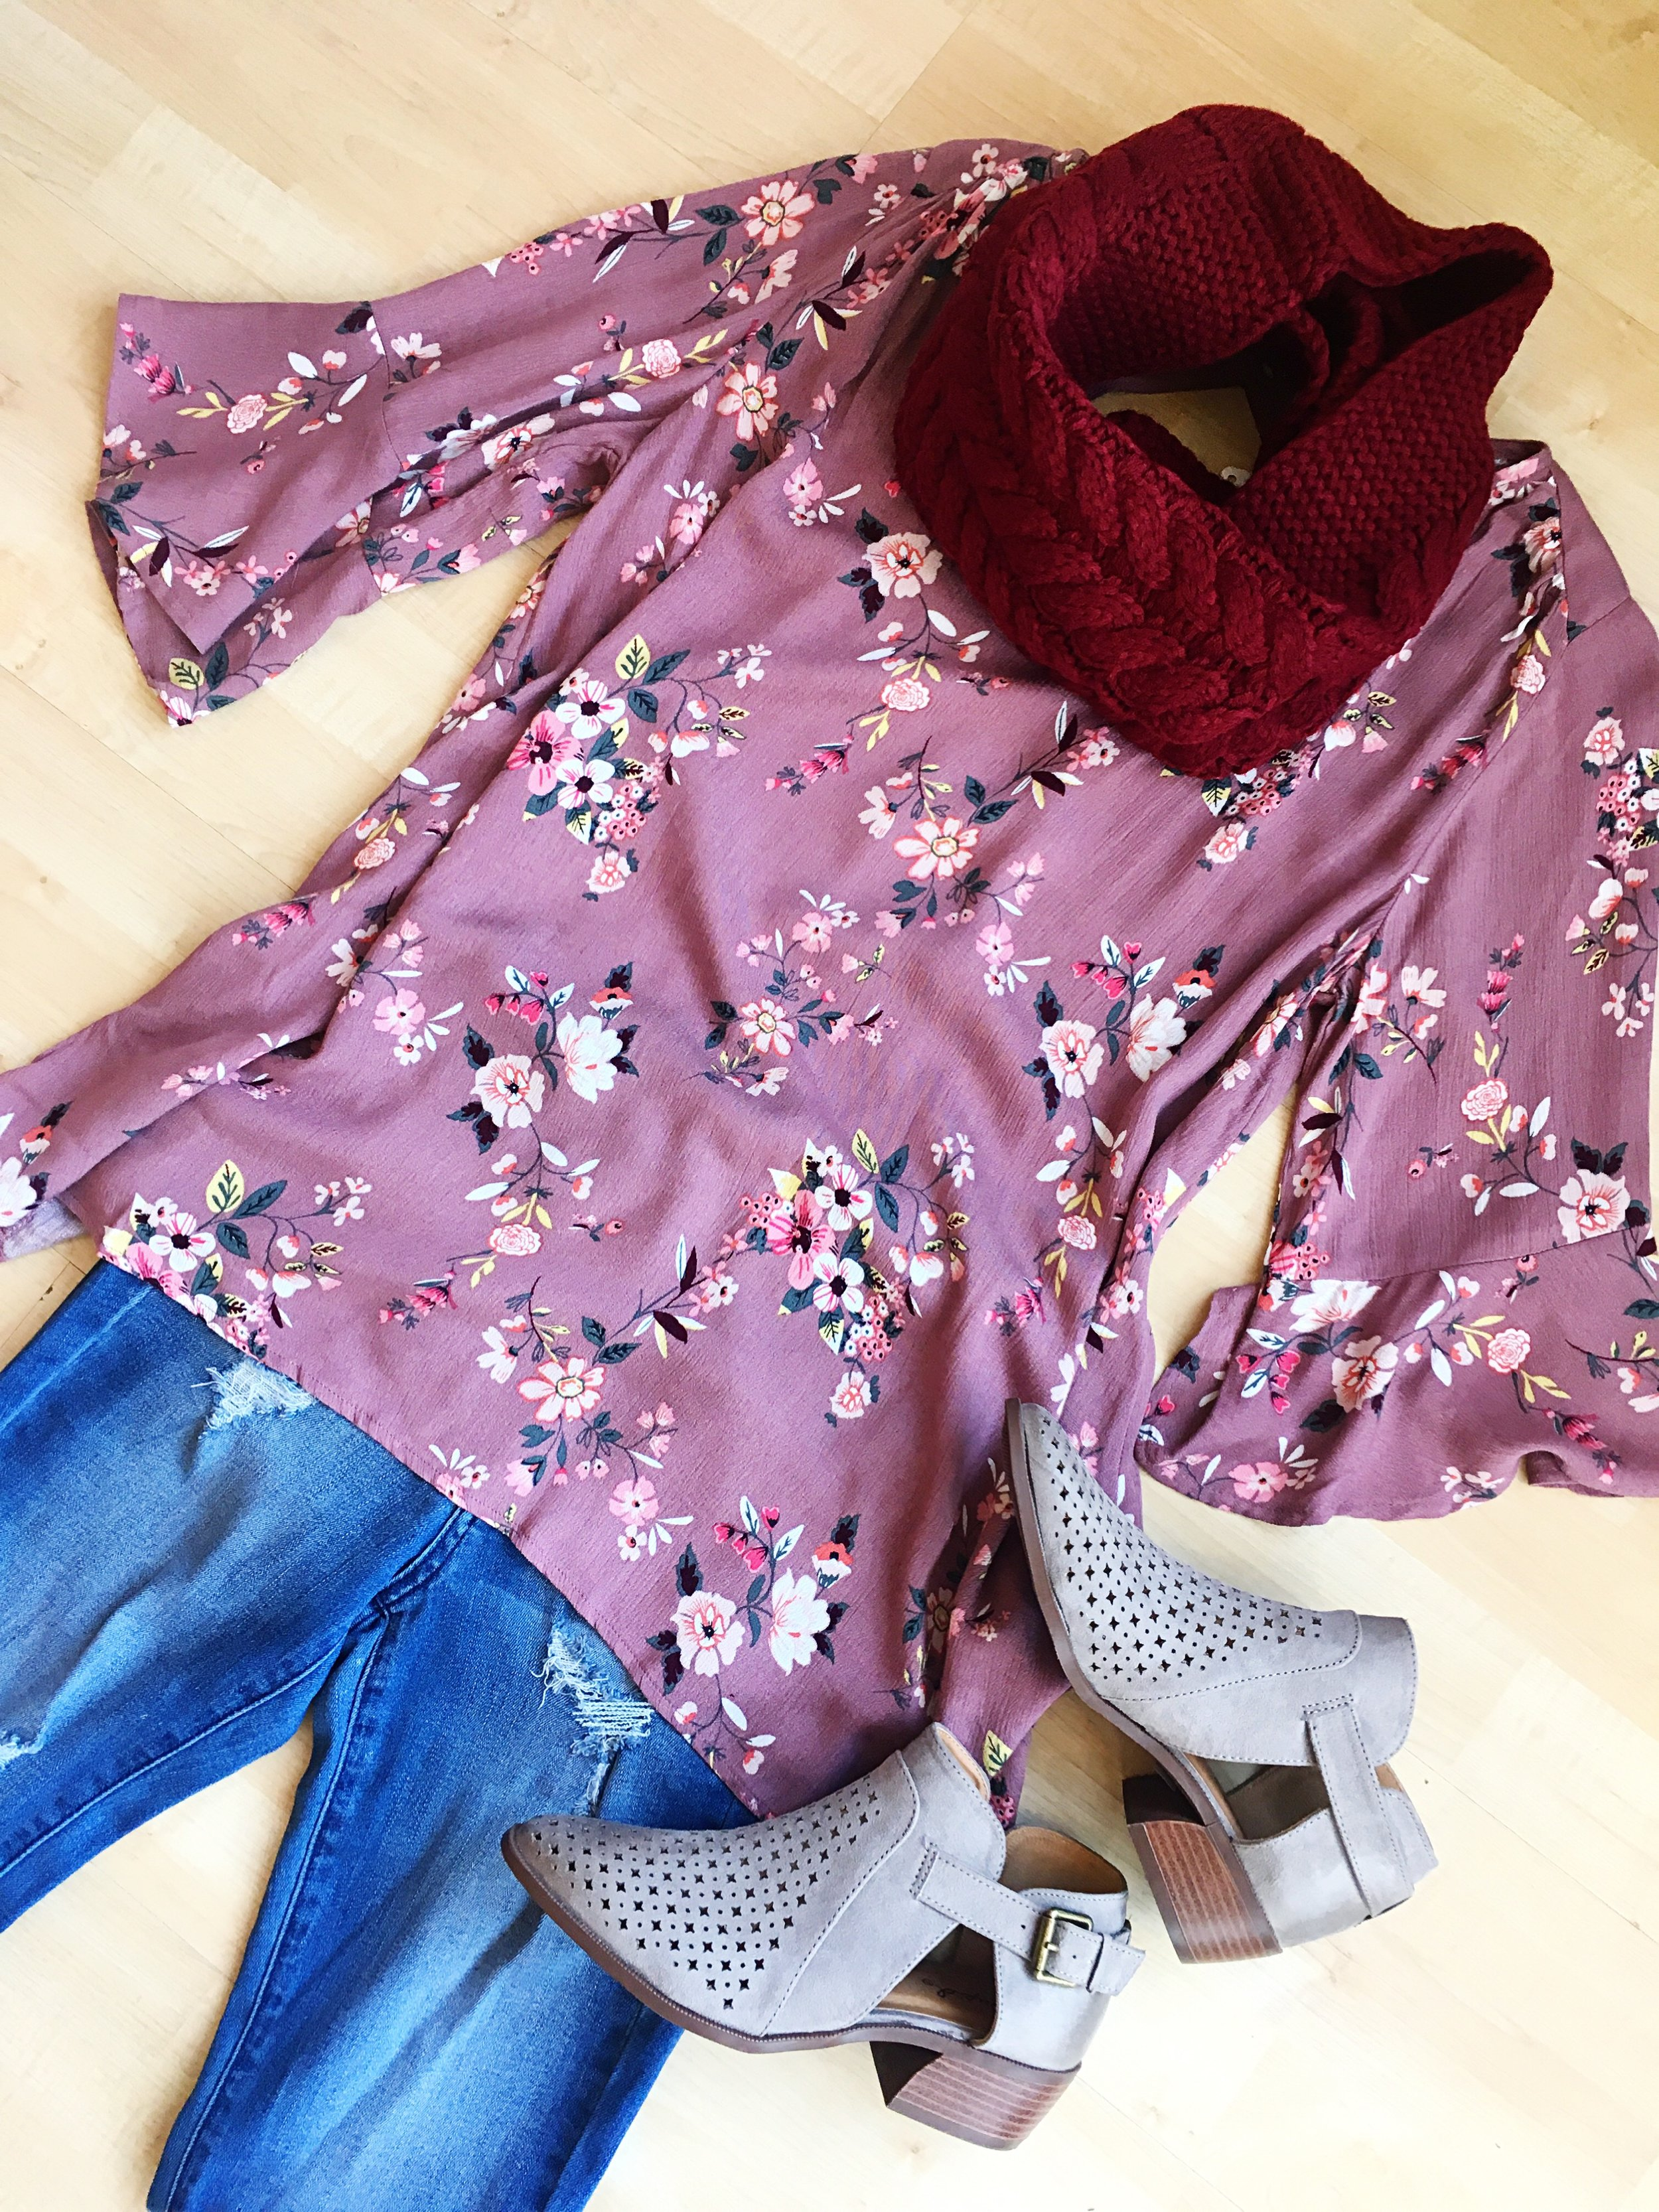 Lighter tops are perfect for layering under scarves and cardigans. Pair them with our booties for a polished look.